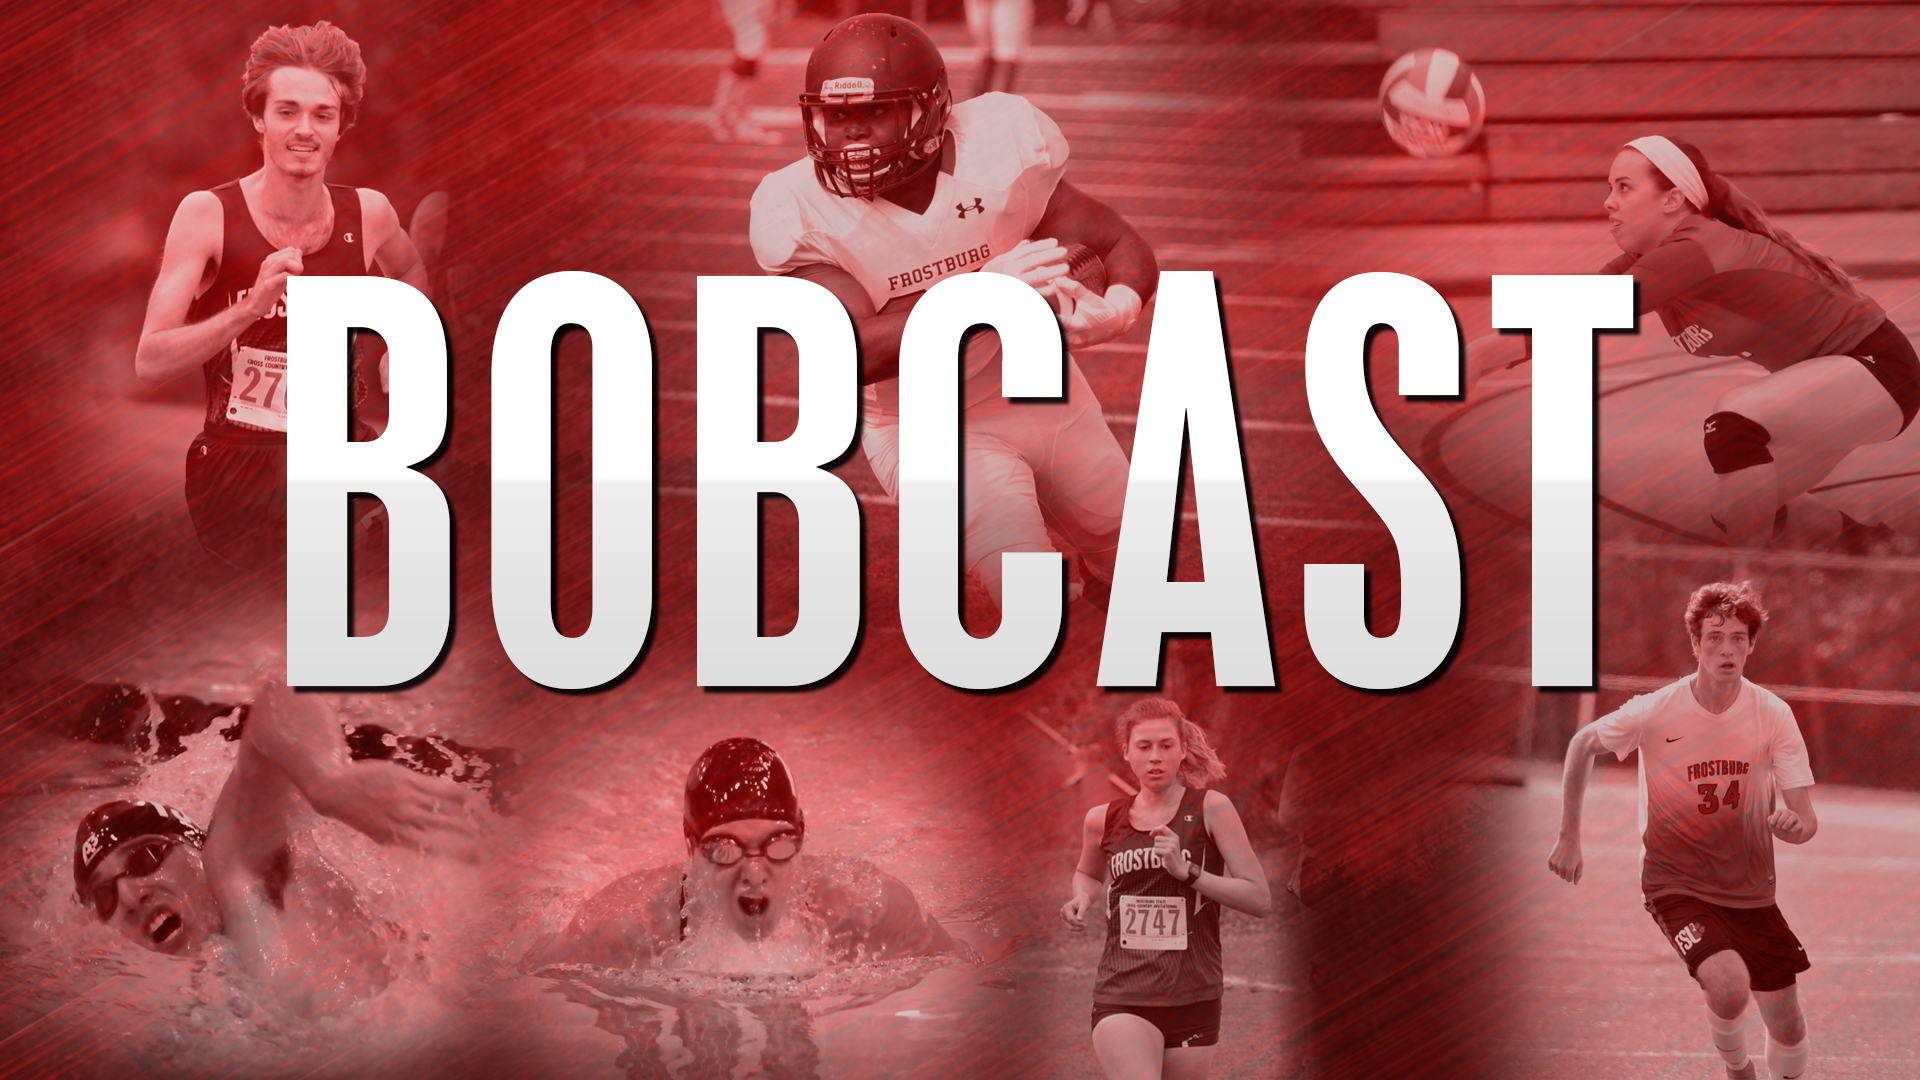 The Bobcast 2018 19 Episode 11 11 5 2018 Frostburg Athletics